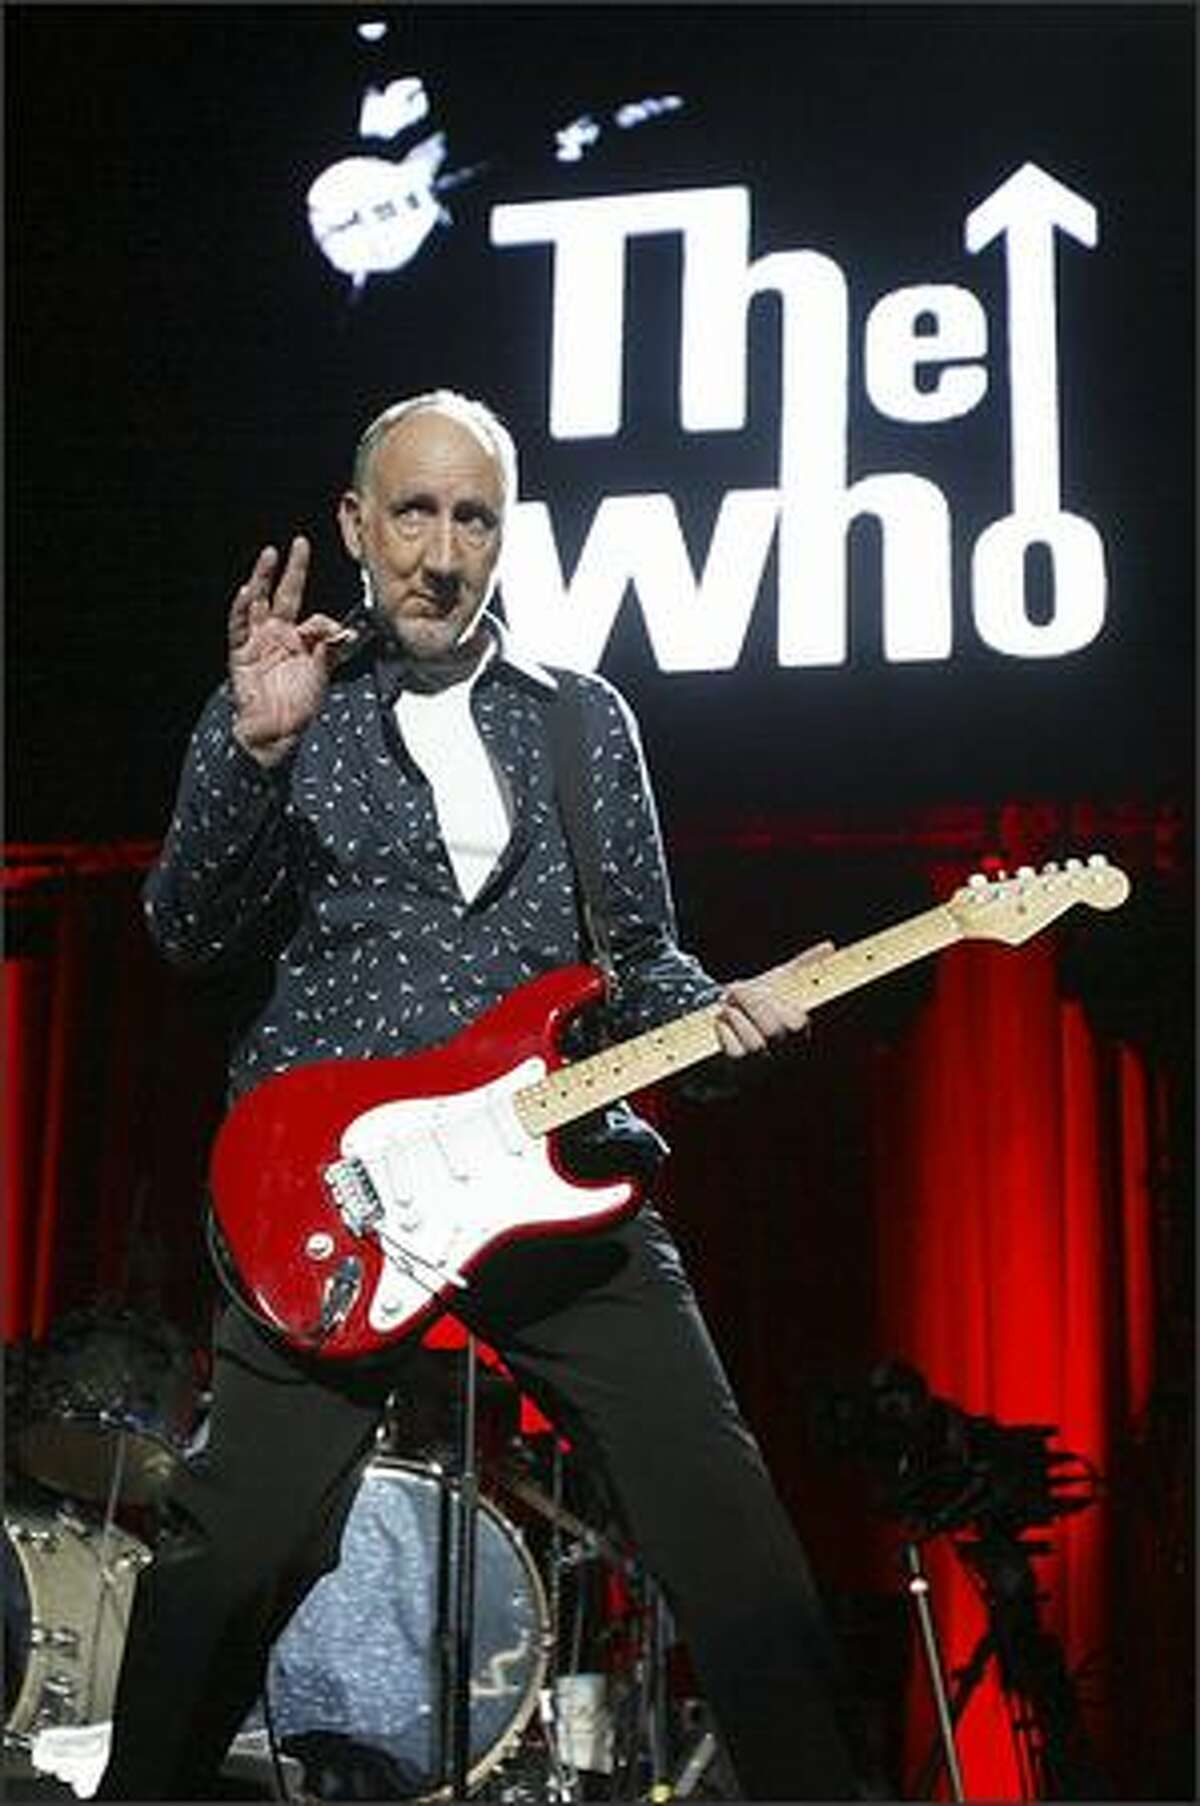 Pete Townsend takes the stage as The Who performs at KeyArena Wednesday night.